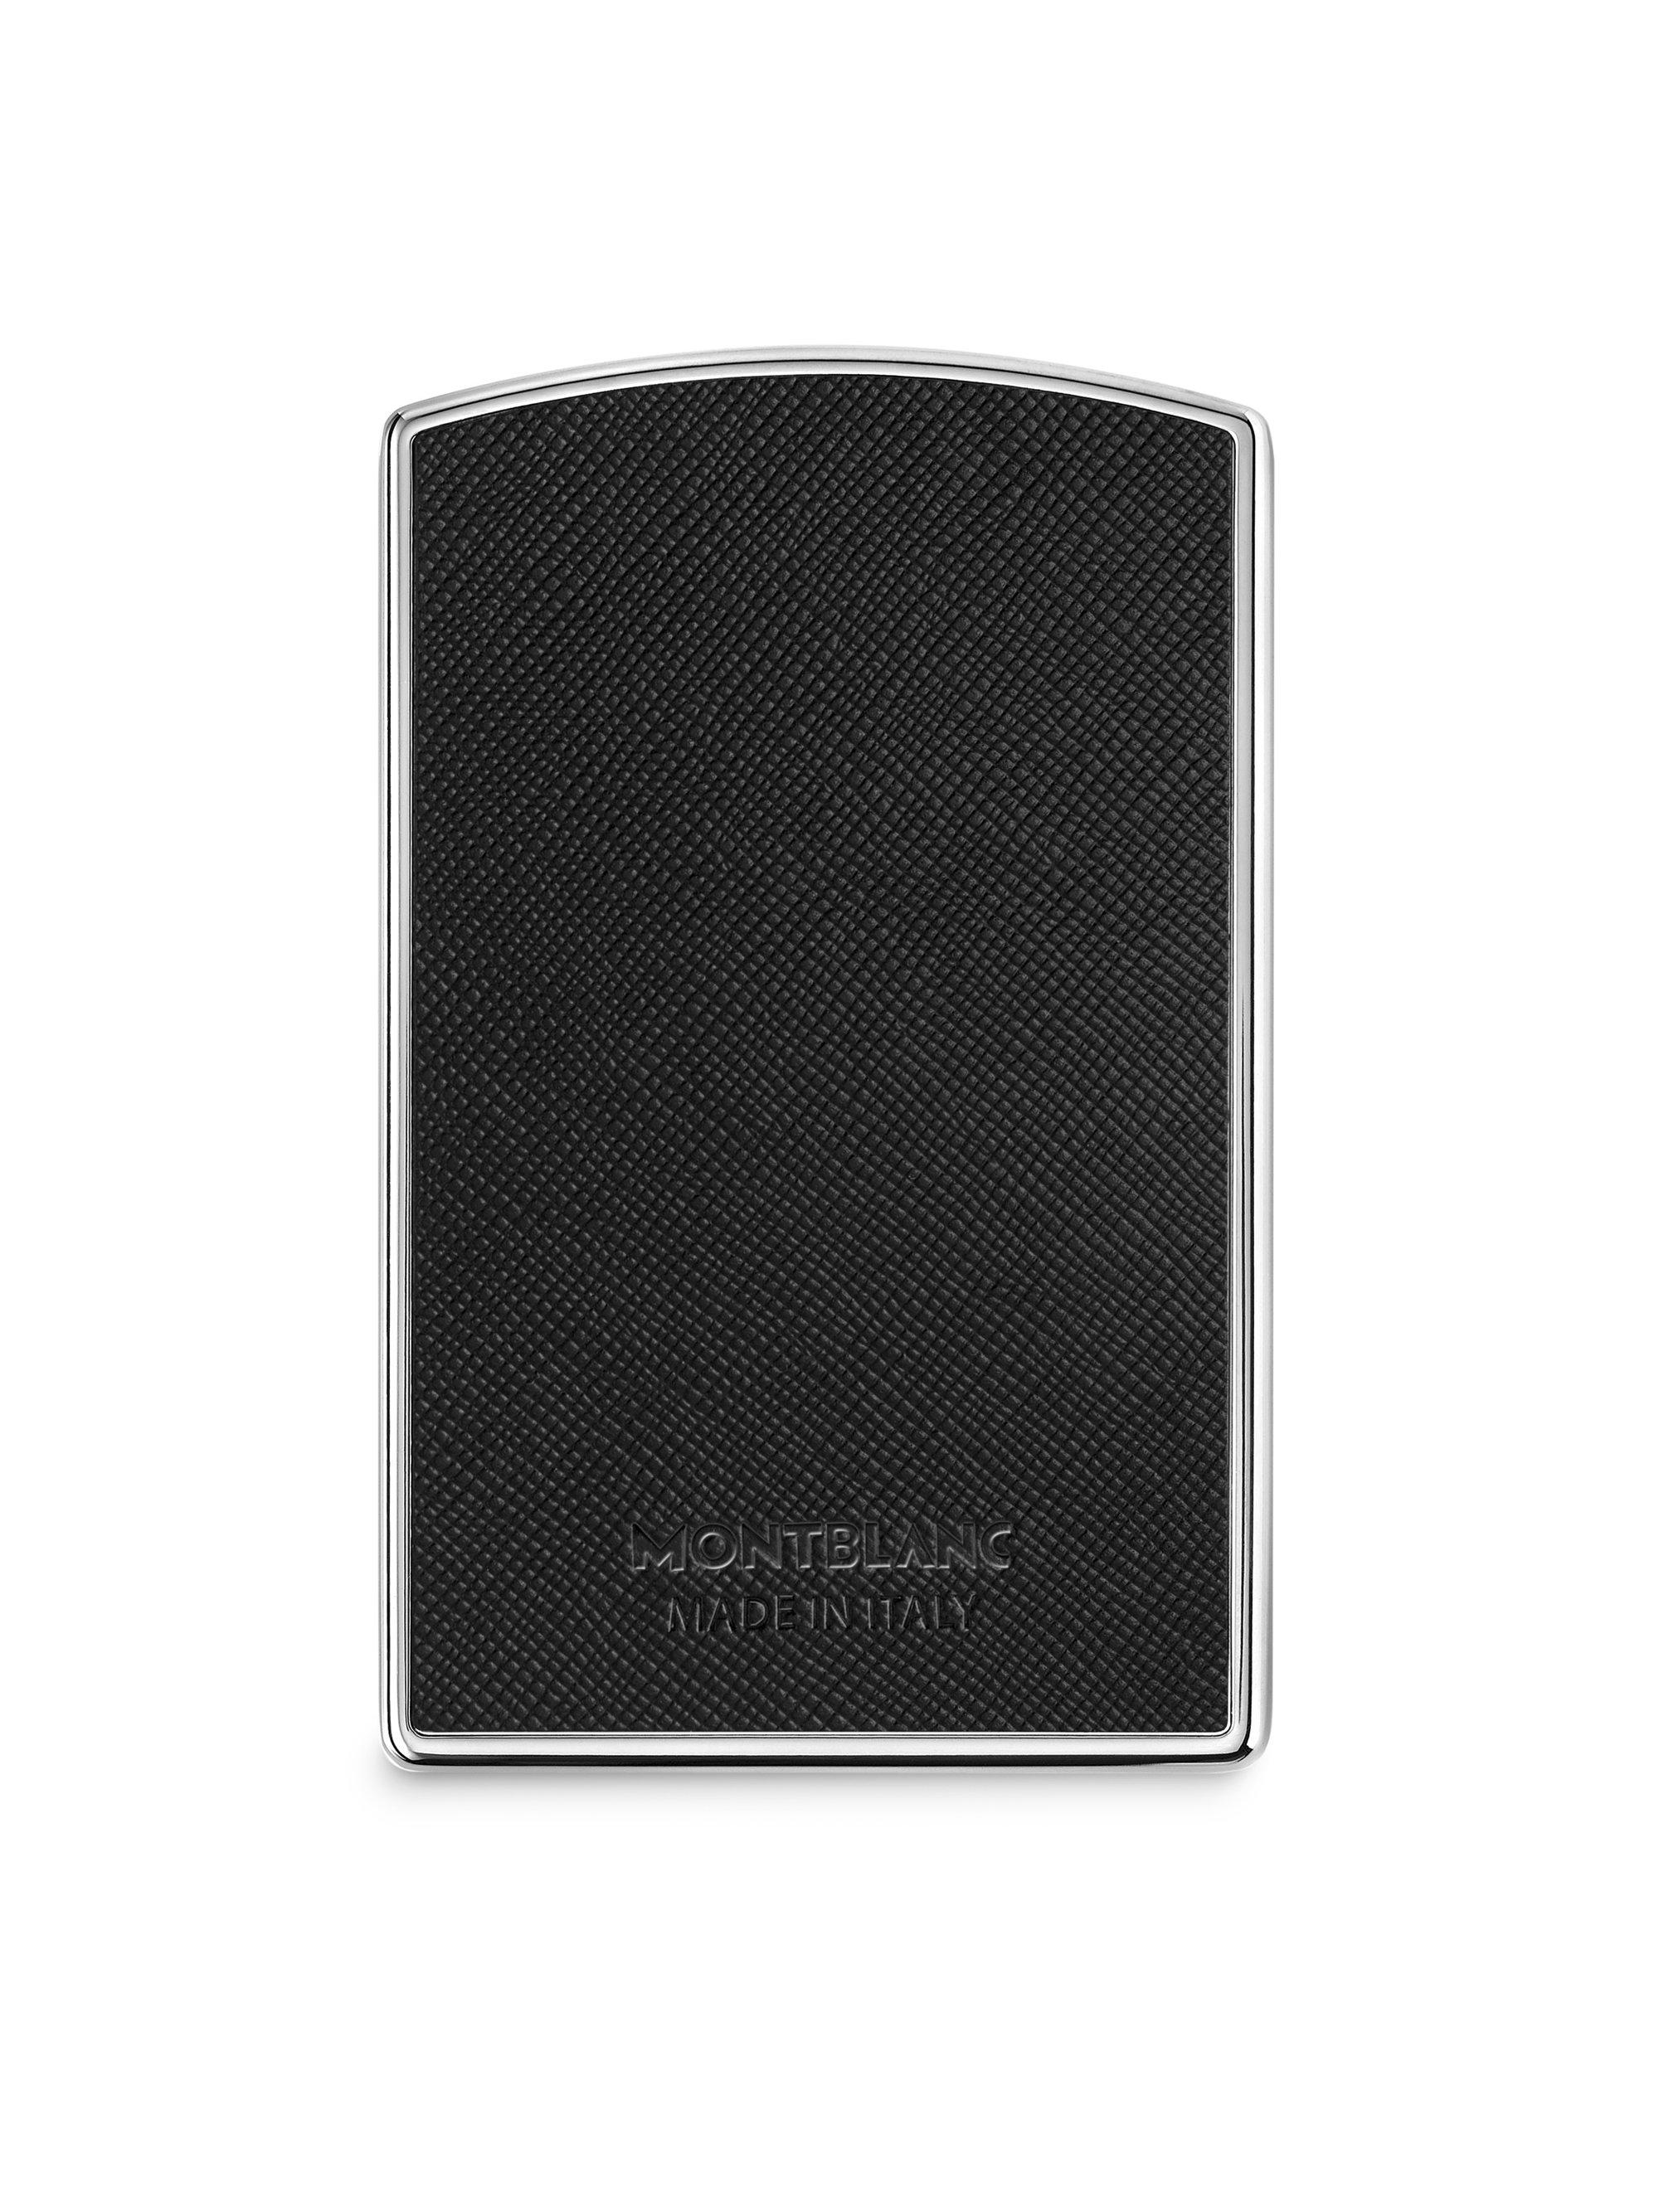 Montblanc hard shell business card holder in black for men lyst gallery reheart Images